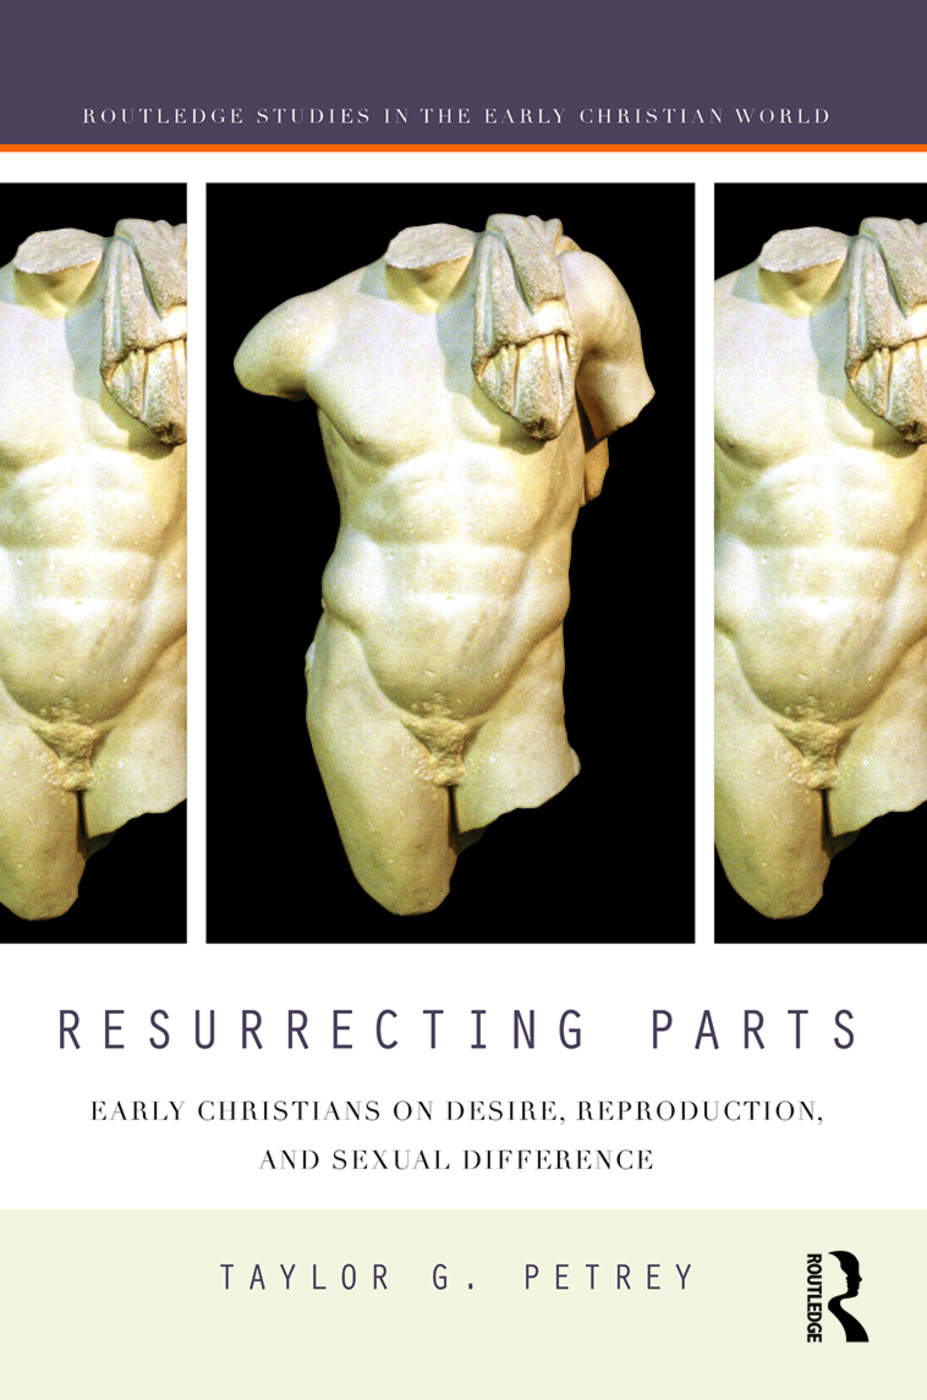 https://www.crcpress.com/go/resurrecting_parts